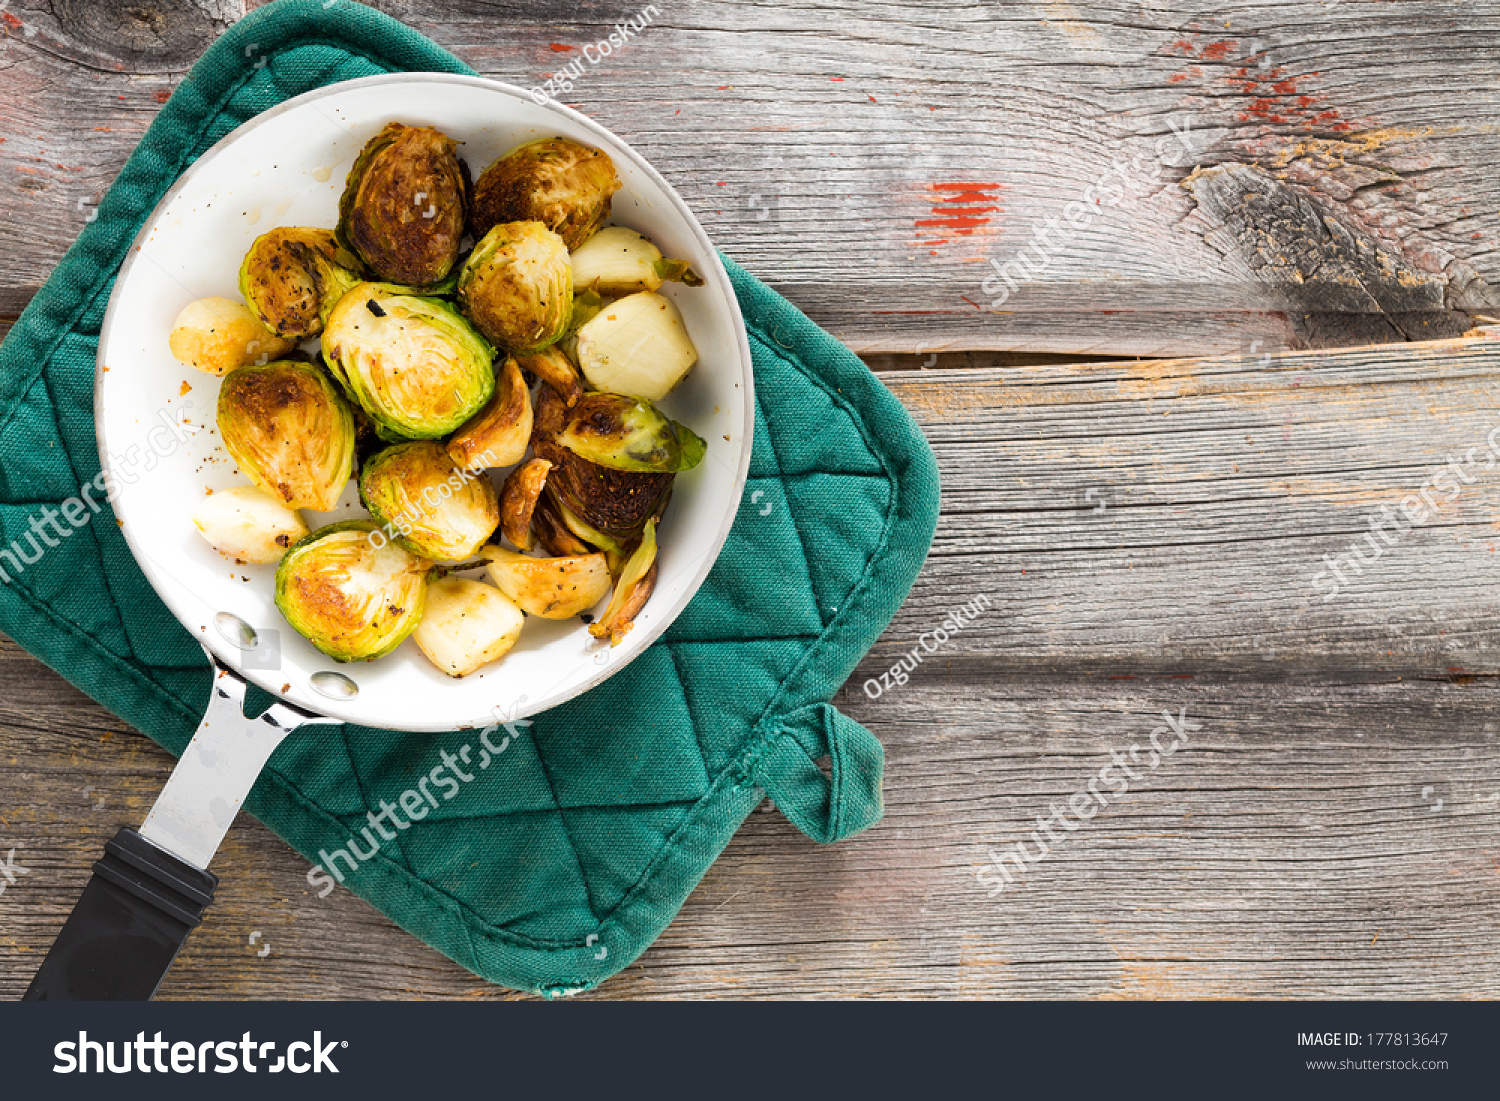 how to cook brussel sprouts in saucepan